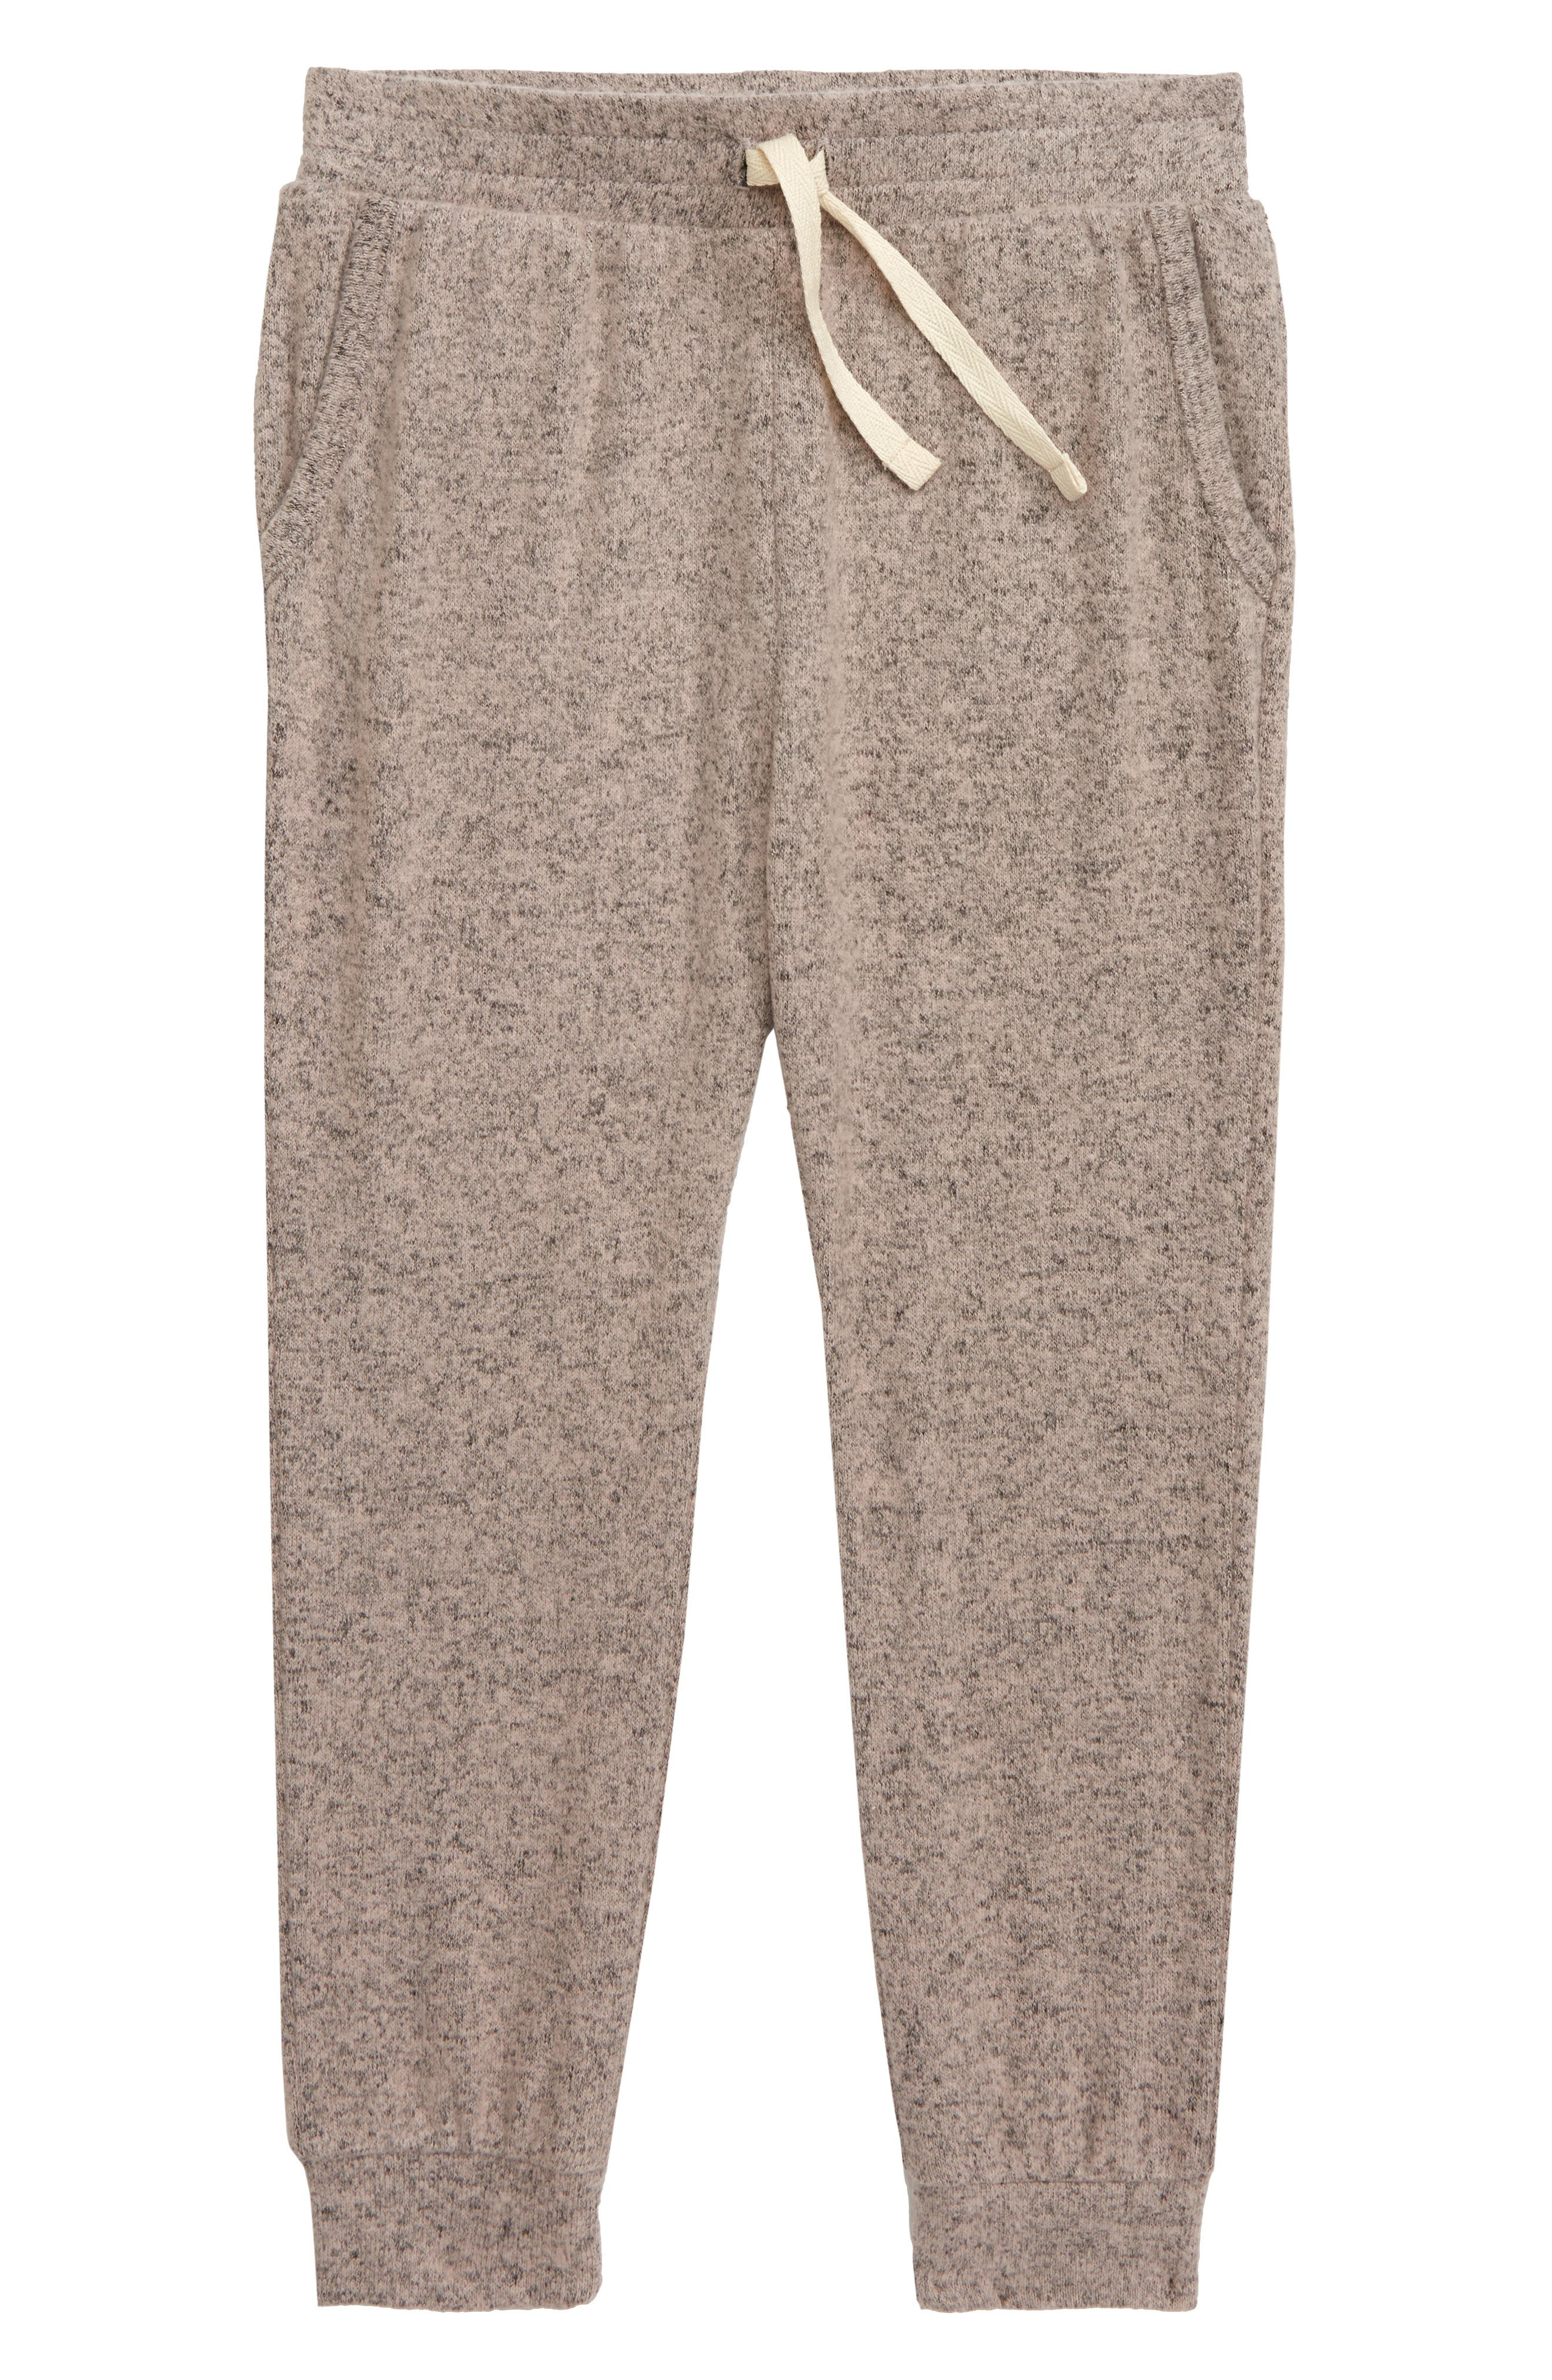 Make room at the top of her drawer-these soft, marled knit joggers are going to be a grab-and-go favorite. Style Name: Tucker + Tate Kids\\\' Cozy Knit Joggers (Toddler Girl, Little Girl & Big Girl). Style Number: 5777152. Available in stores.